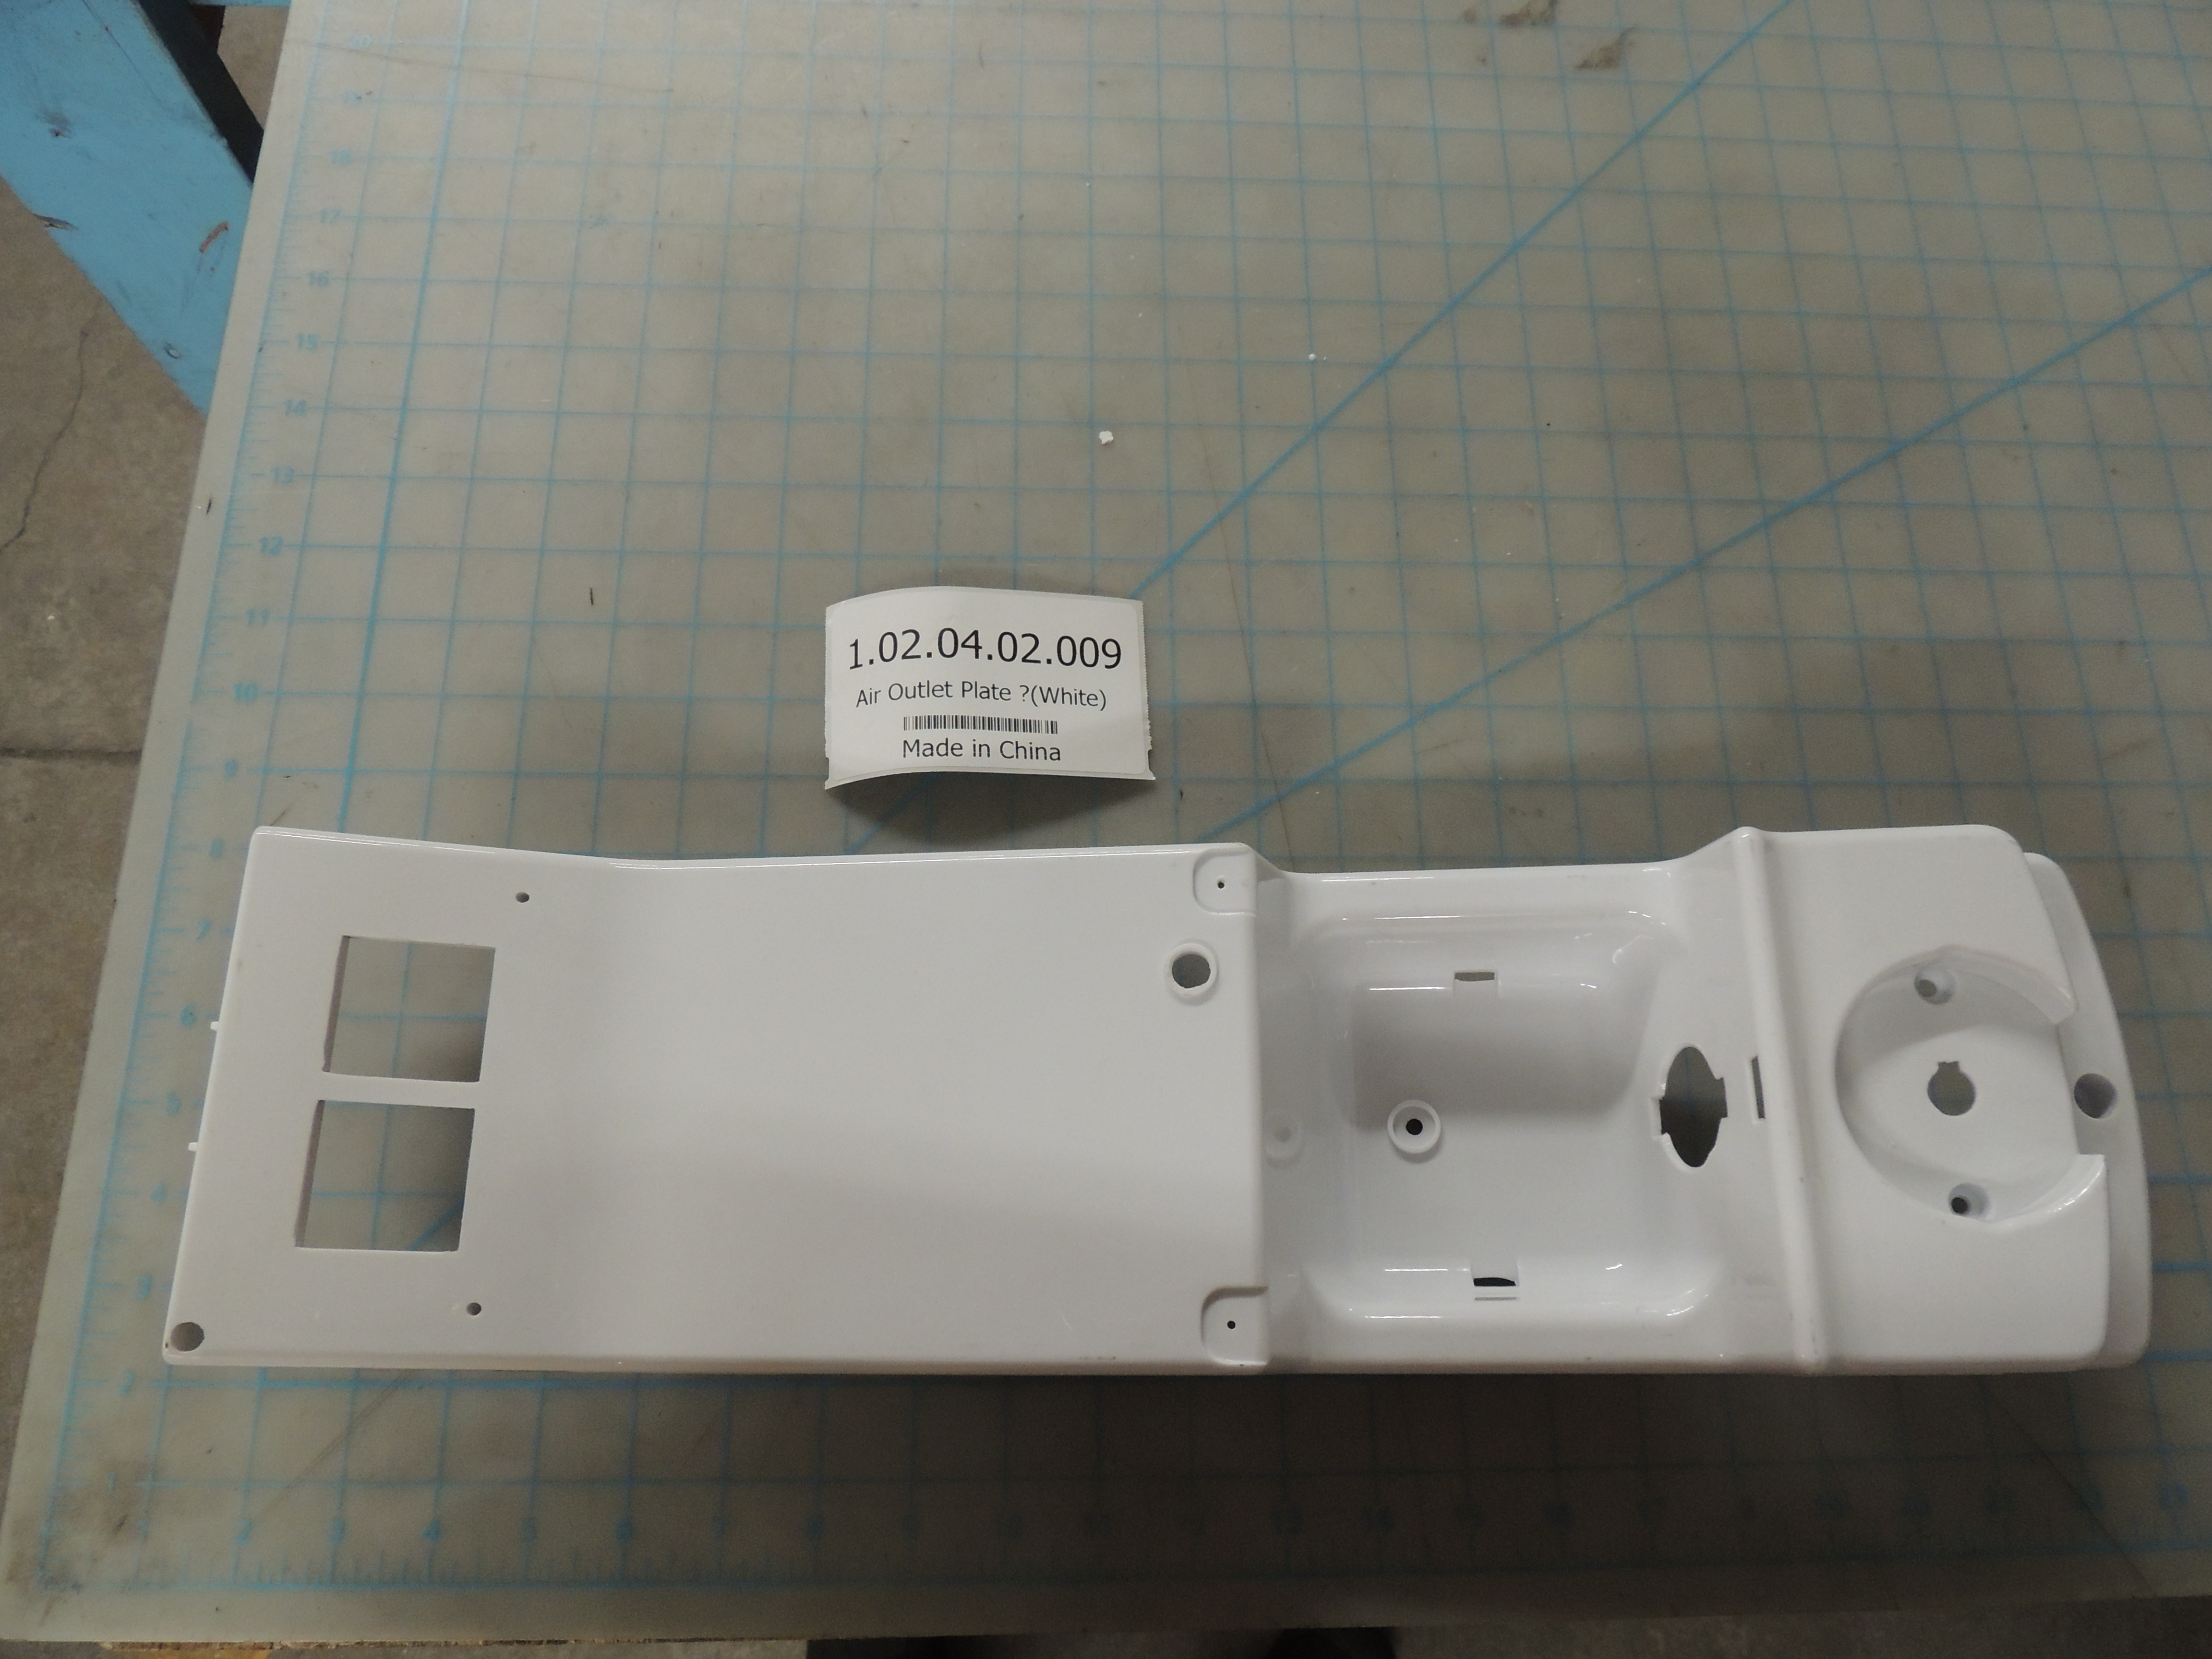 Air Outlet Plate ?(White)